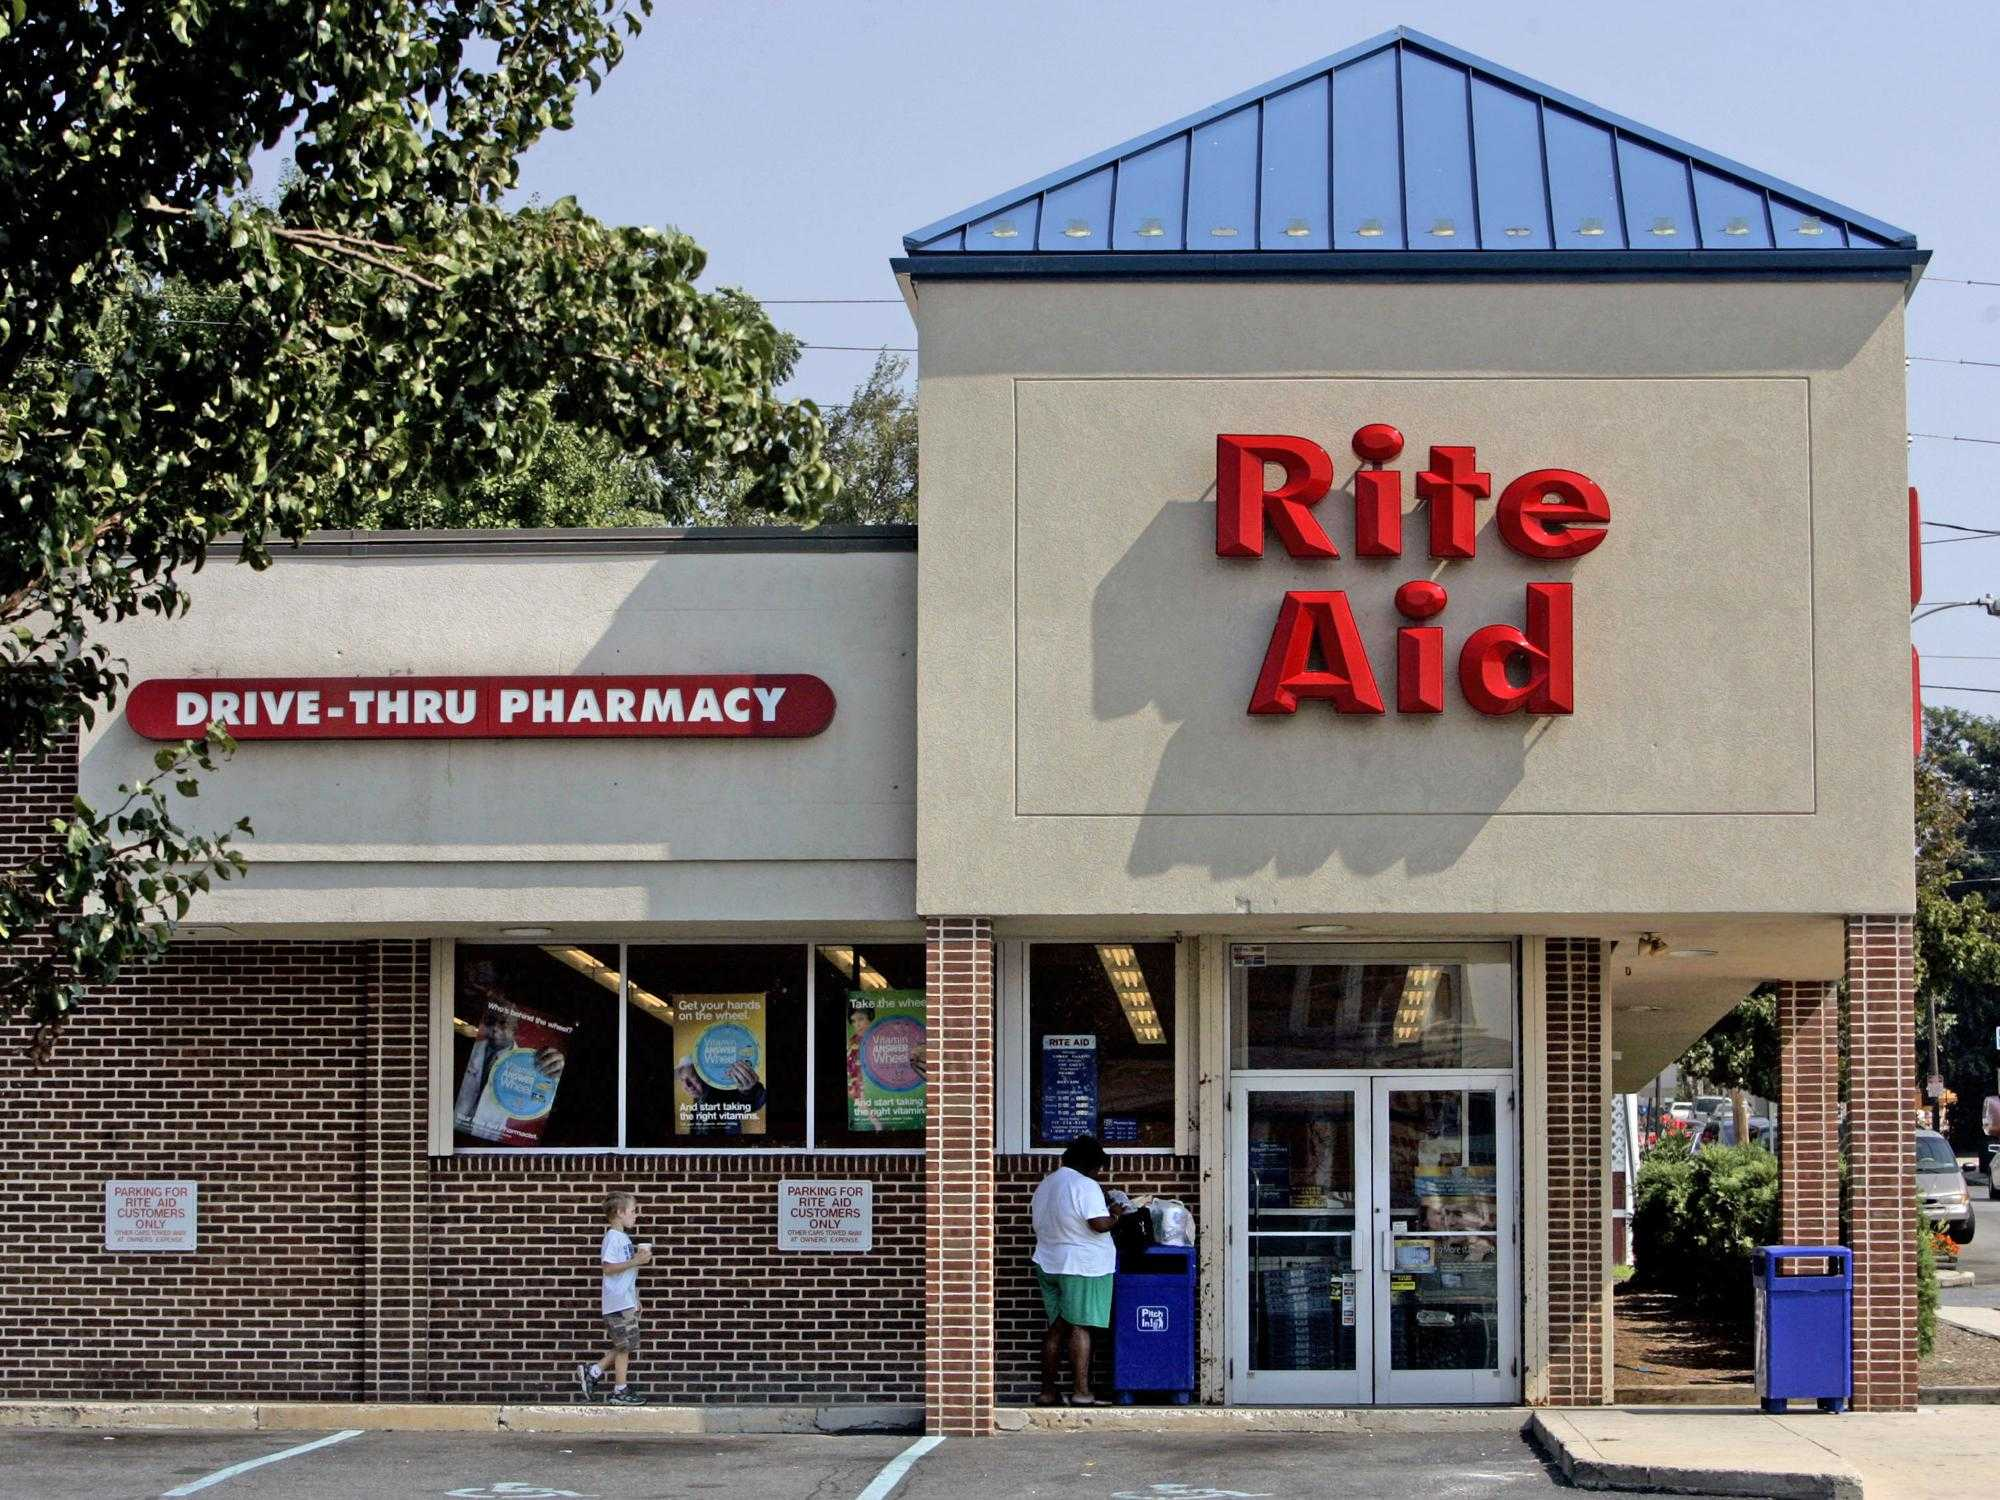 Safeway parent Albertsons to buy what's left of Rite Aid